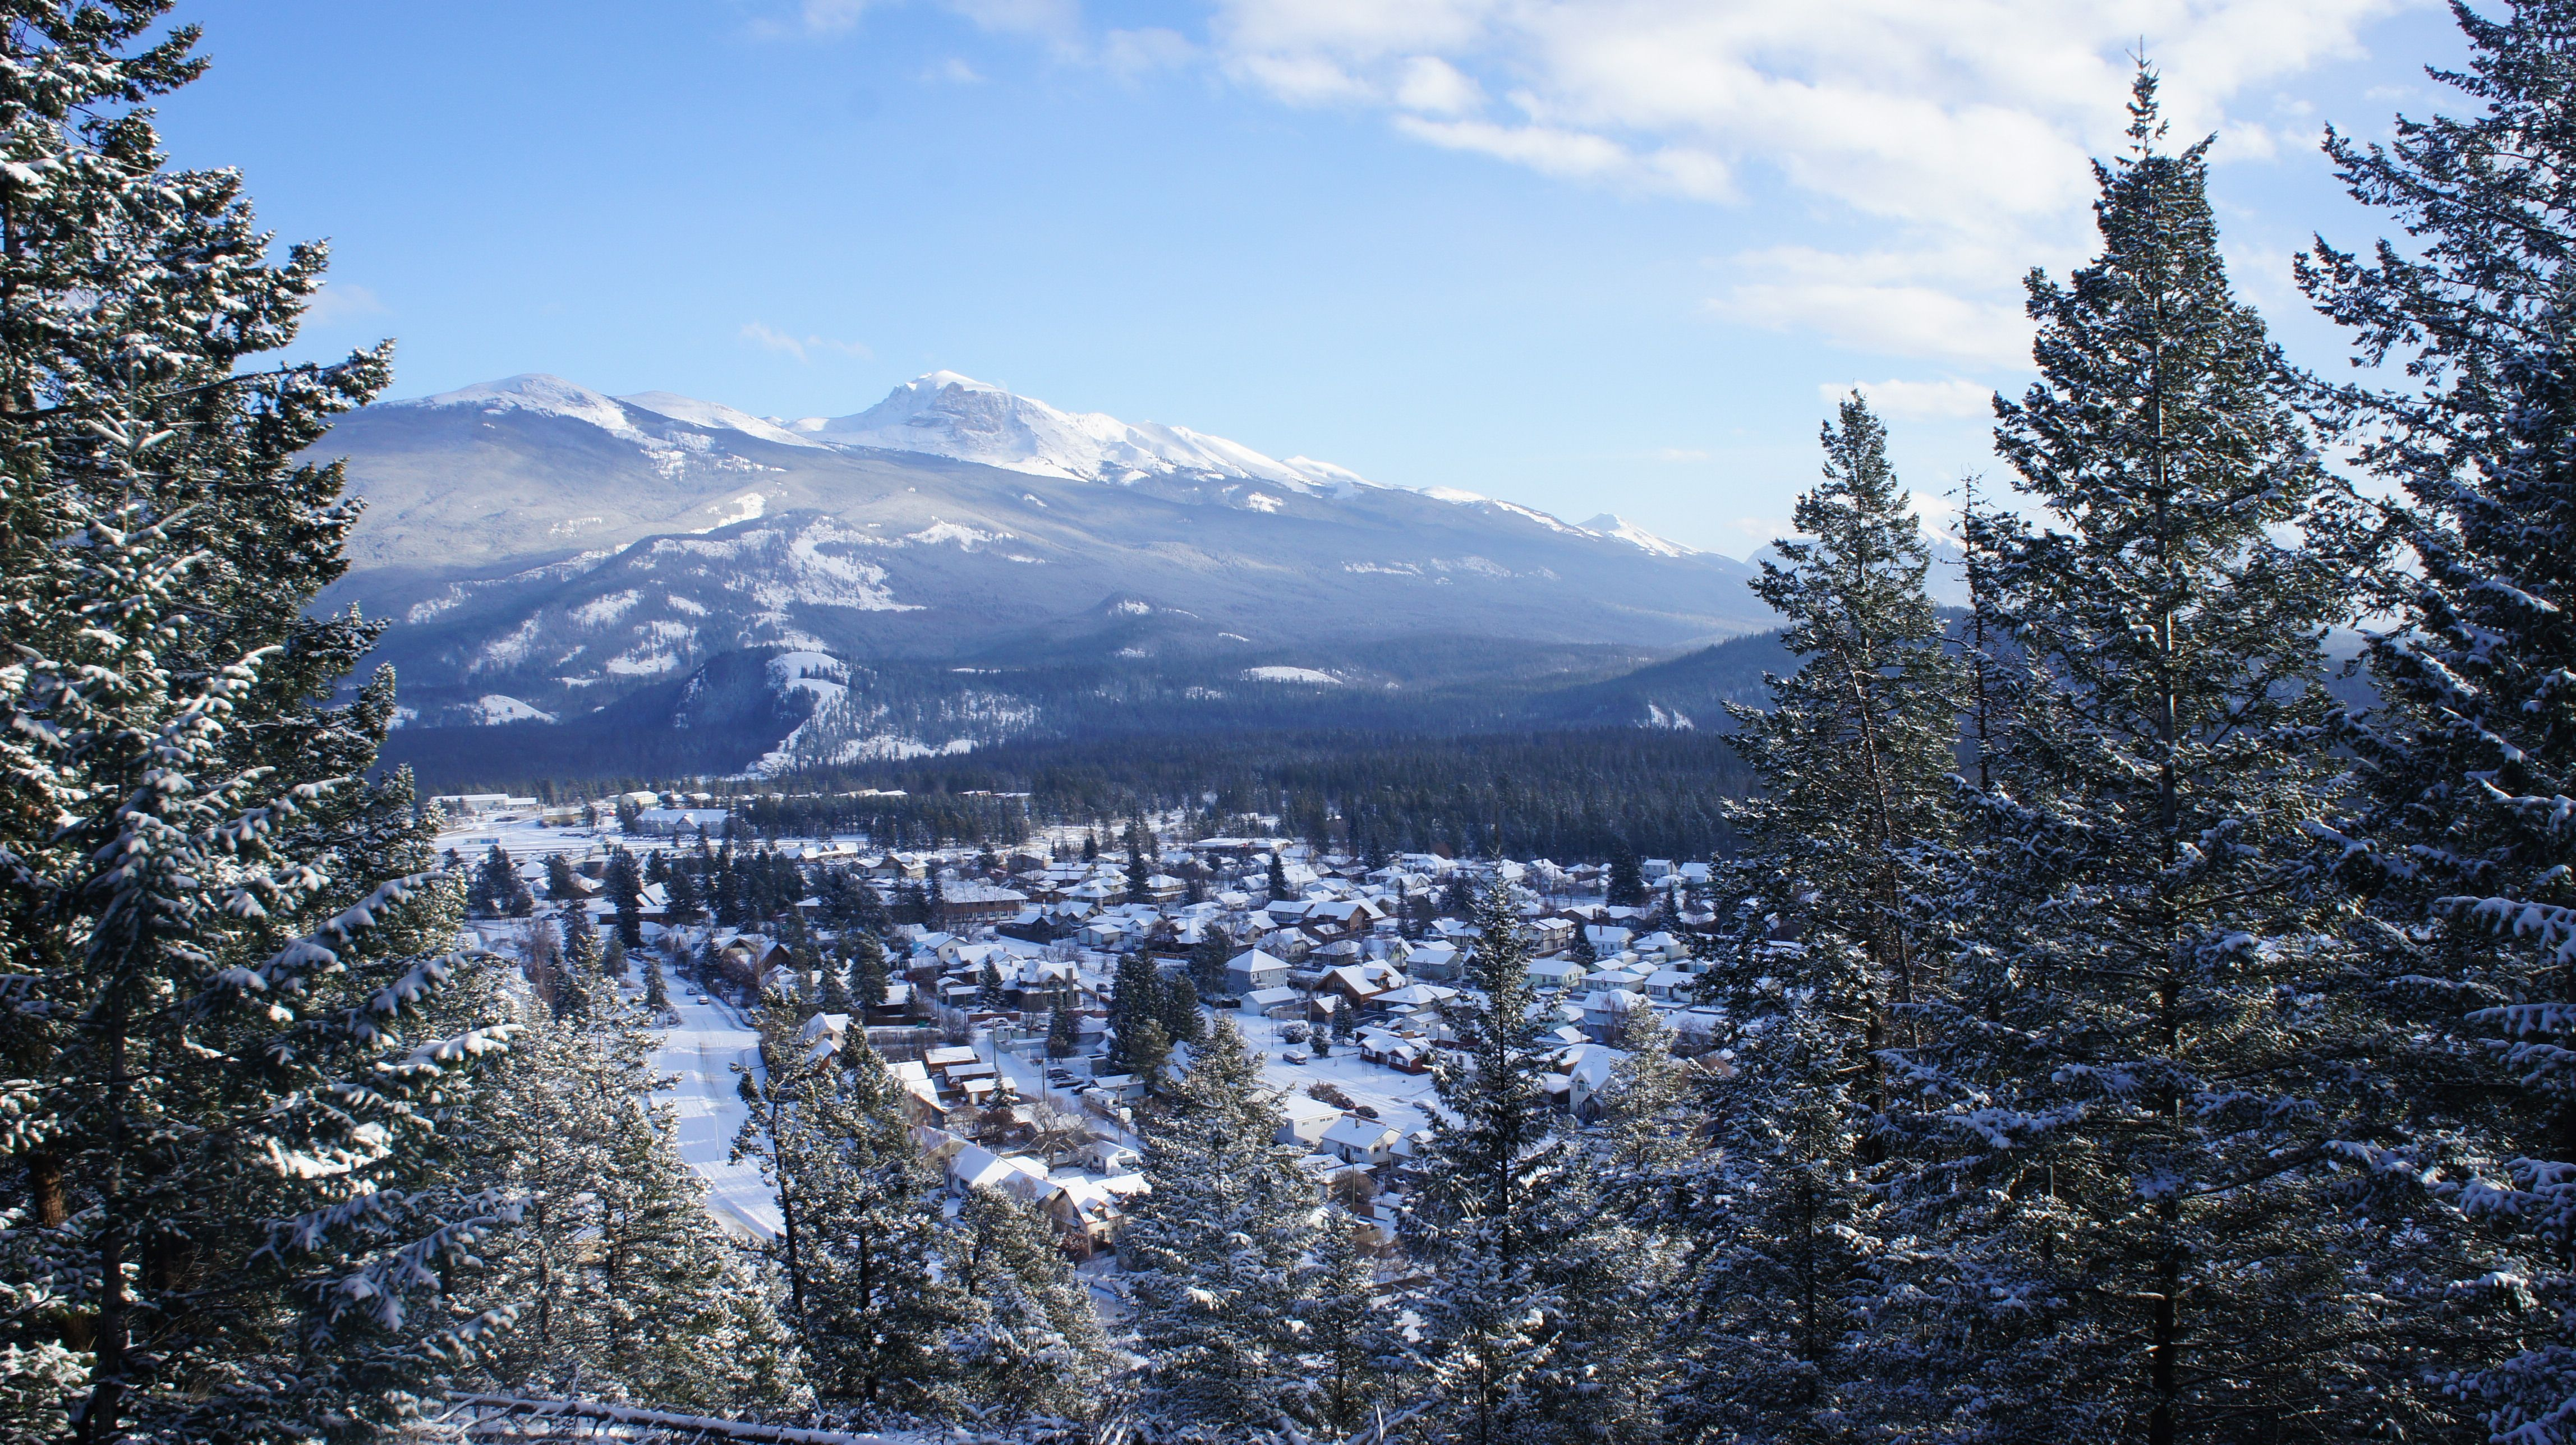 Jasper, Alberta. Beautiful town surrounded by the Rockies! Been there